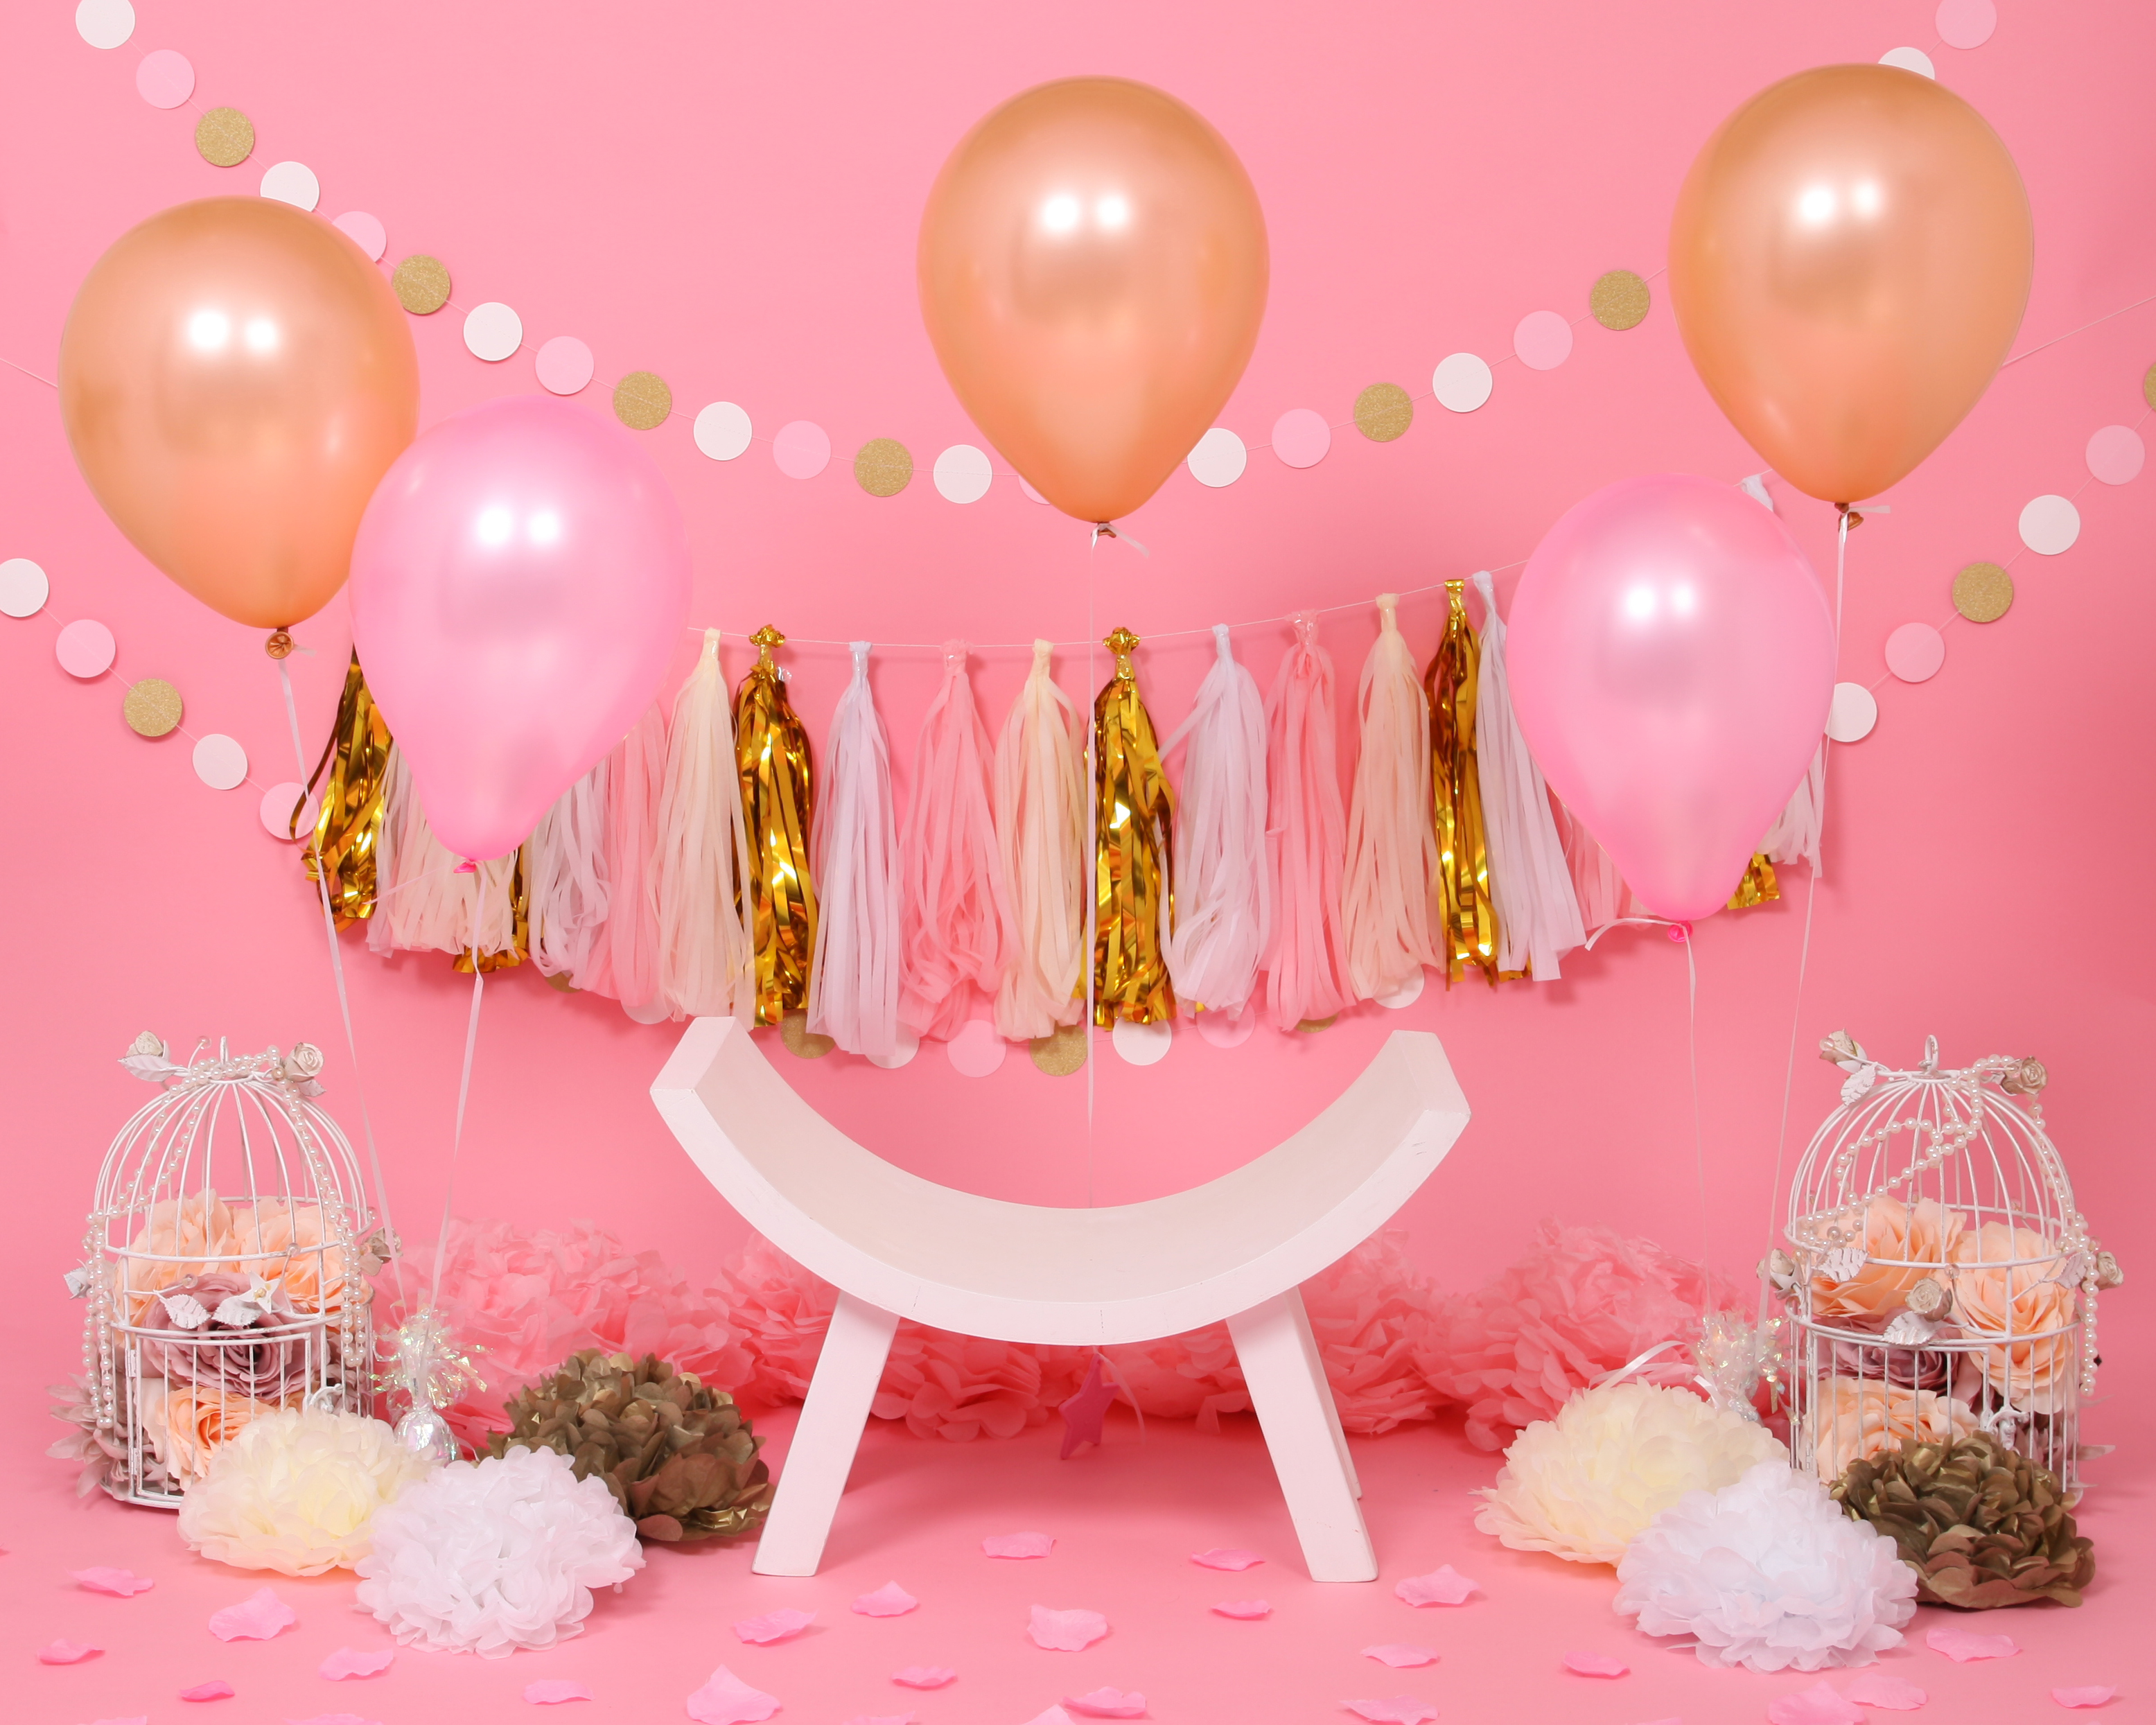 Pink and Gold Cake Smash